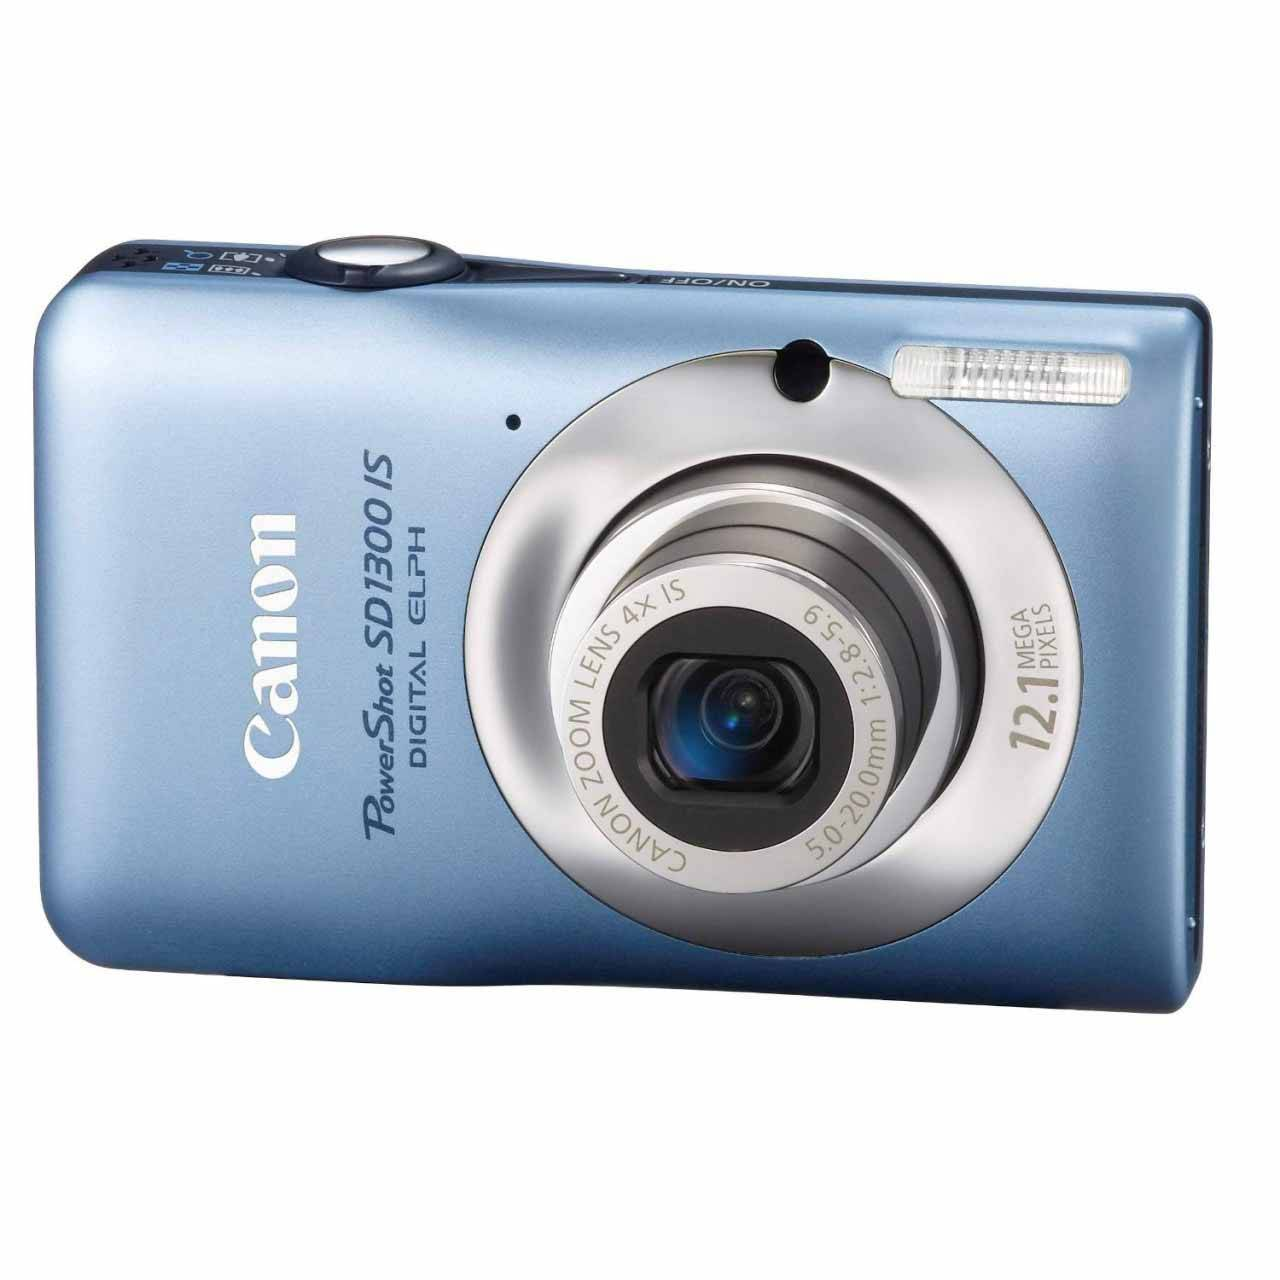 Canon PowerShot SD1300IS 12.1 MP Digital Camera with 4x Wide Angle Optical Image Stabilized Zoom and